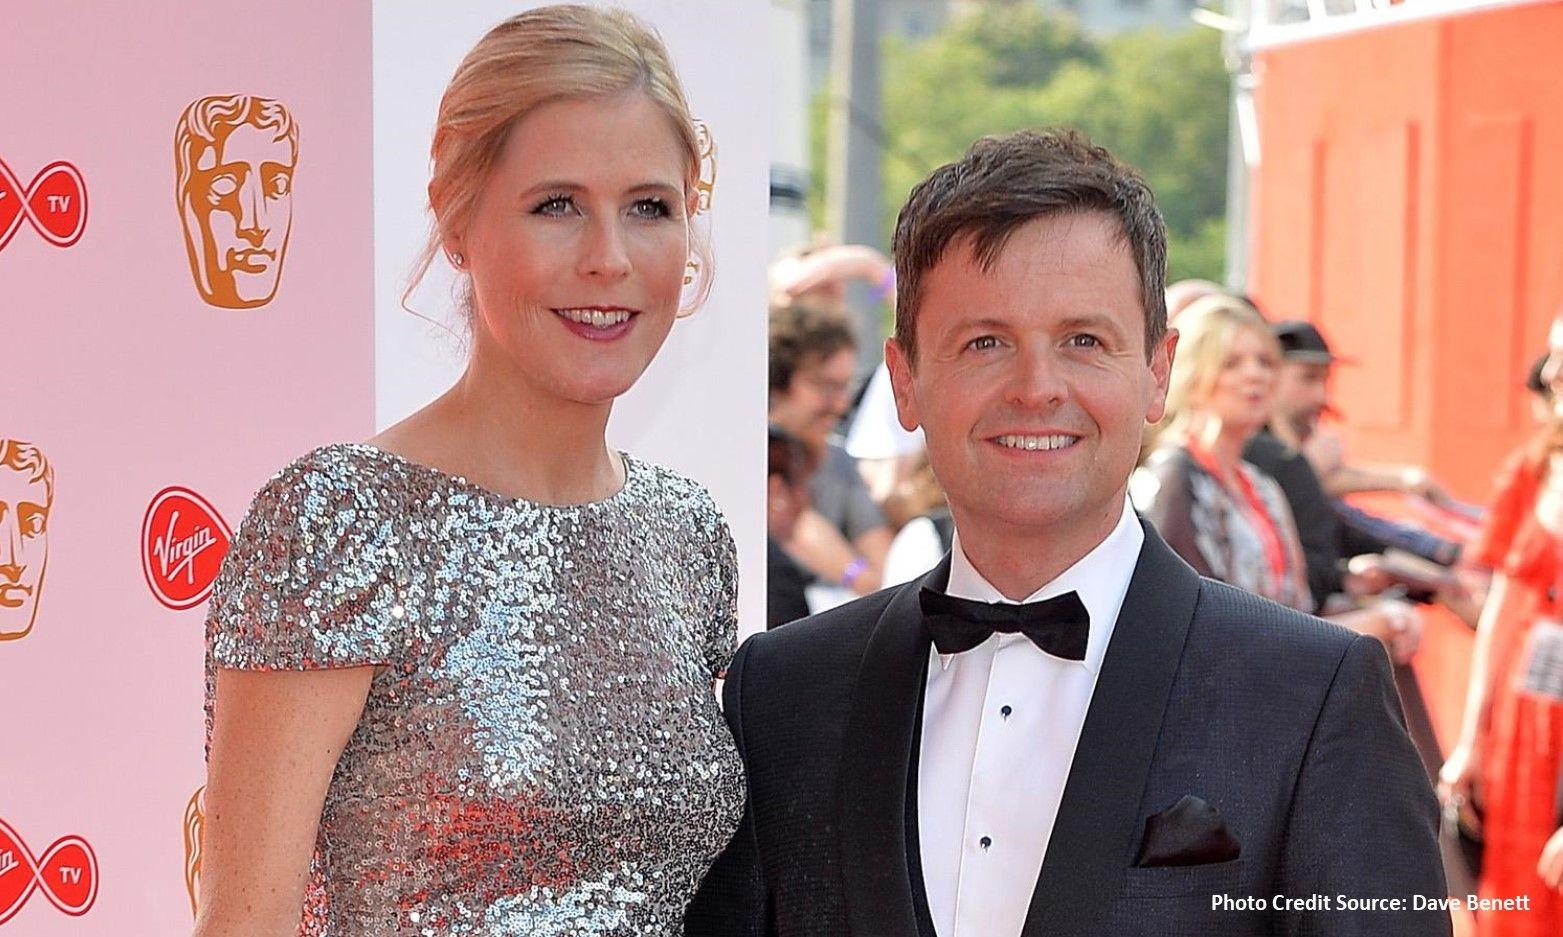 Declan Donnelly and Wife Ali Welcomes their First Baby